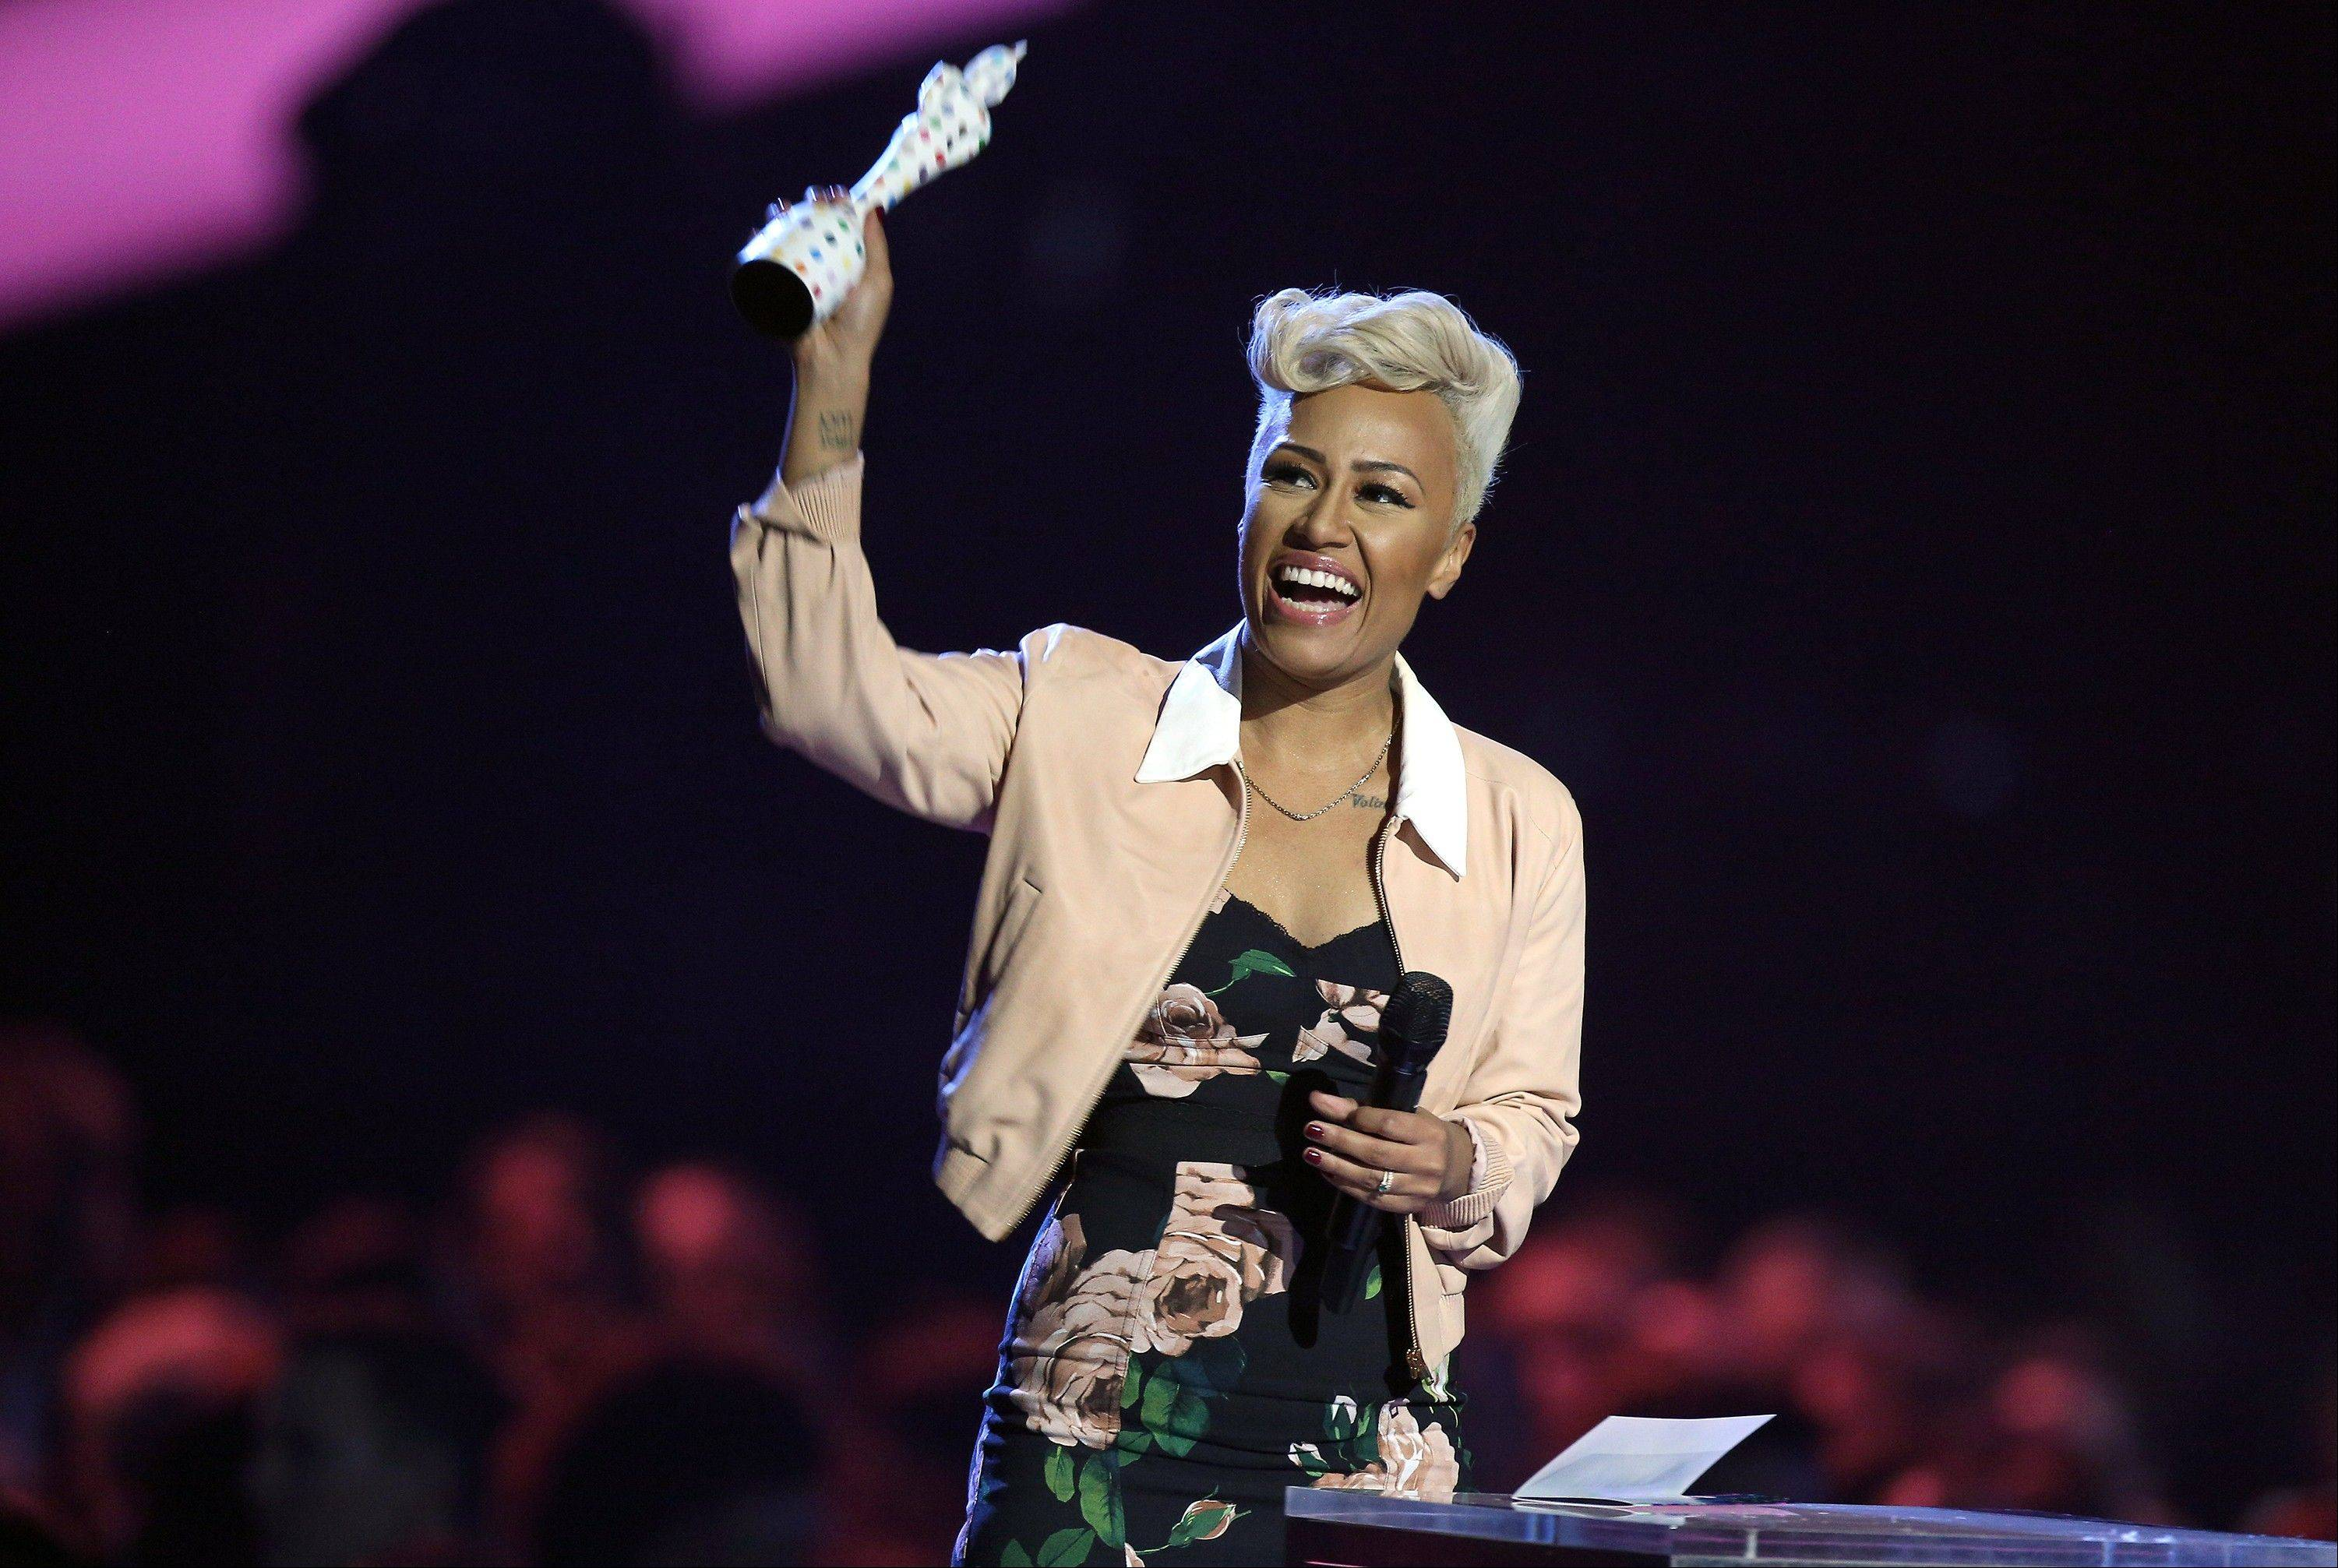 Emeli Sande won the British Album of the Year award during the BRIT Awards 2013 at the O2 Arena in London on Wednesday.